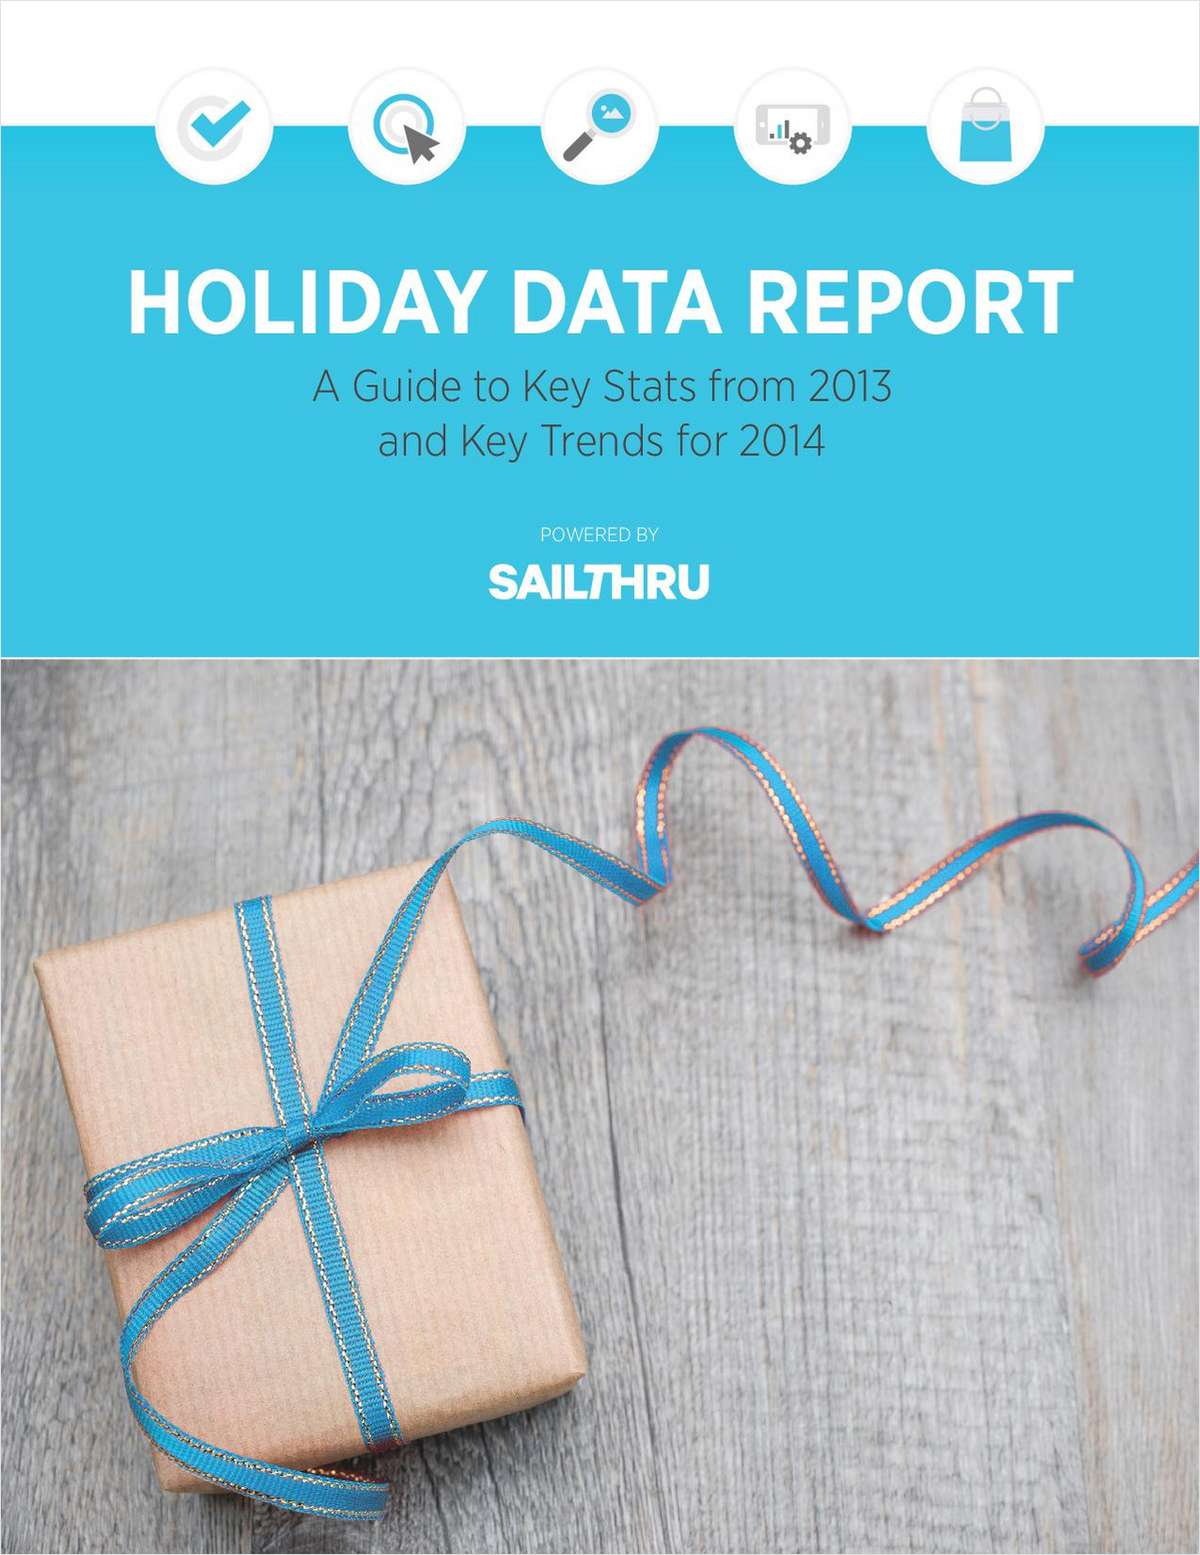 The Must-Have Email Marketing Holiday Data Report